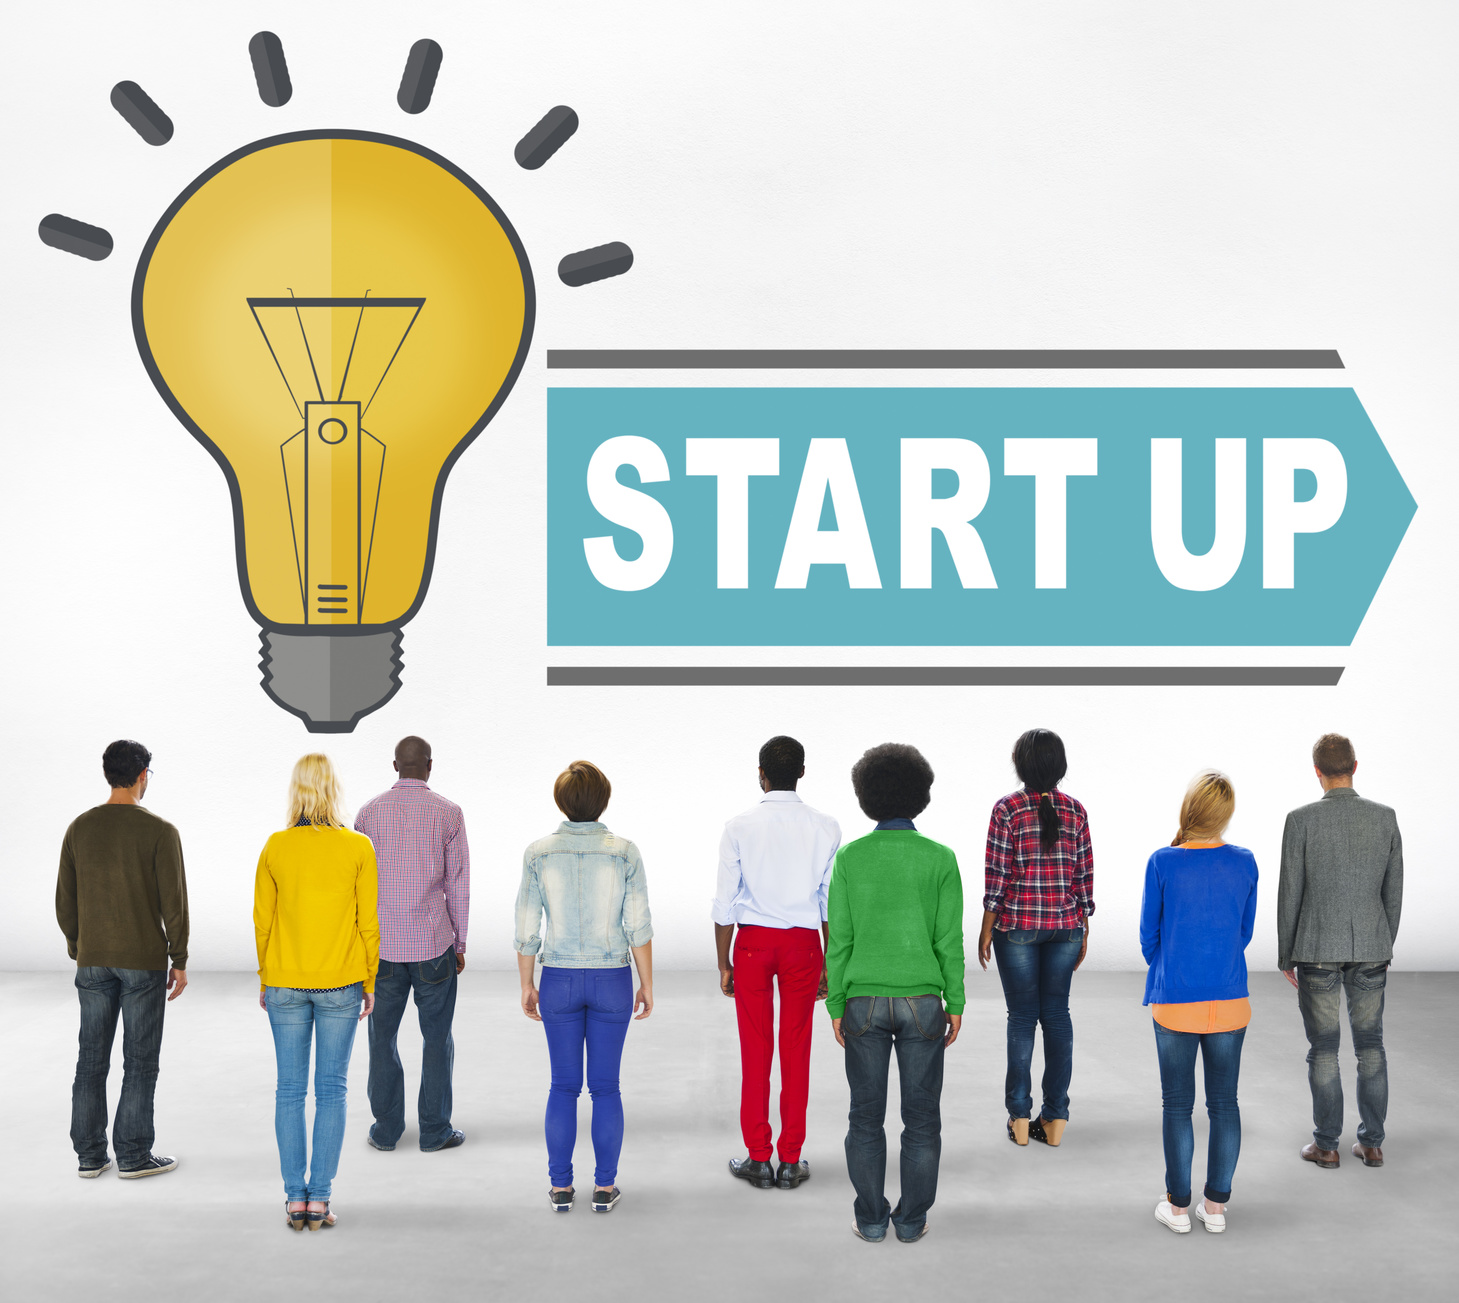 Start Up New Business Strategy Ideas Concept